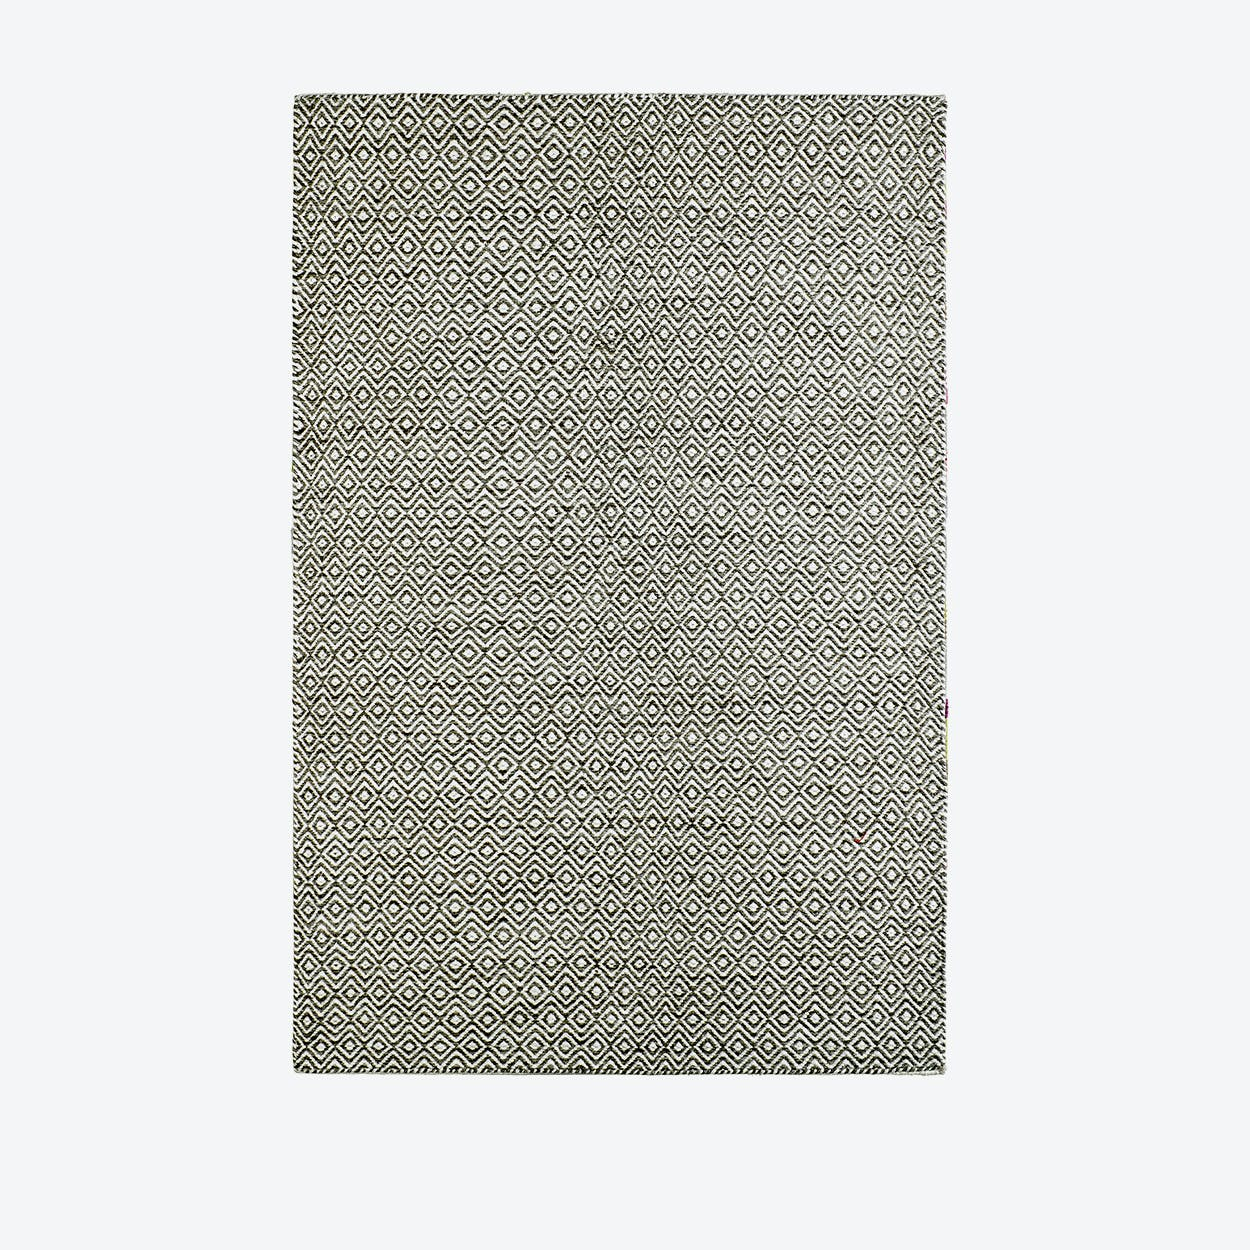 My Jaipur 334 Coffee Rug